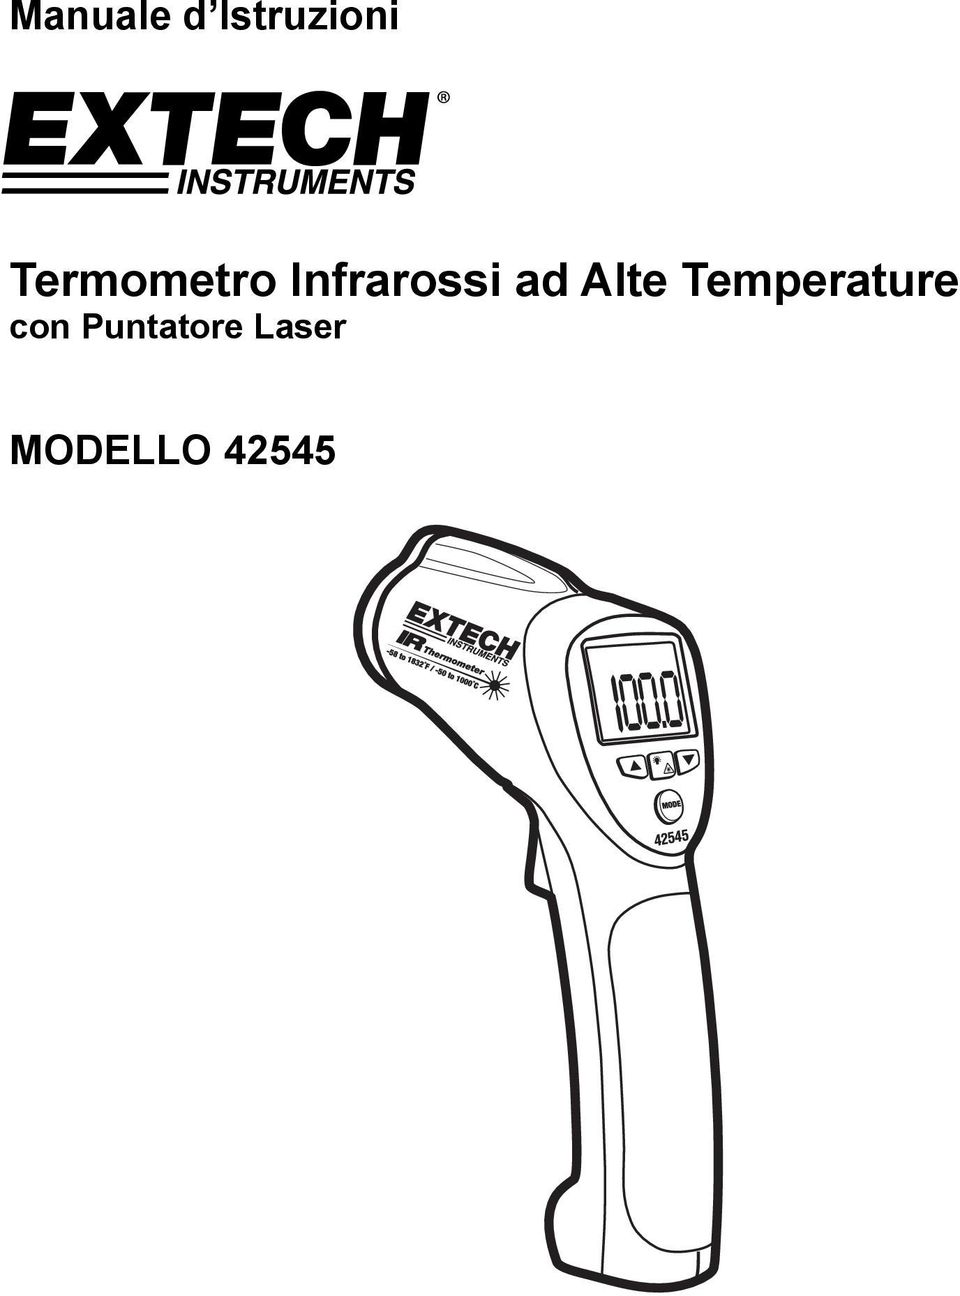 ad Alte Temperature con